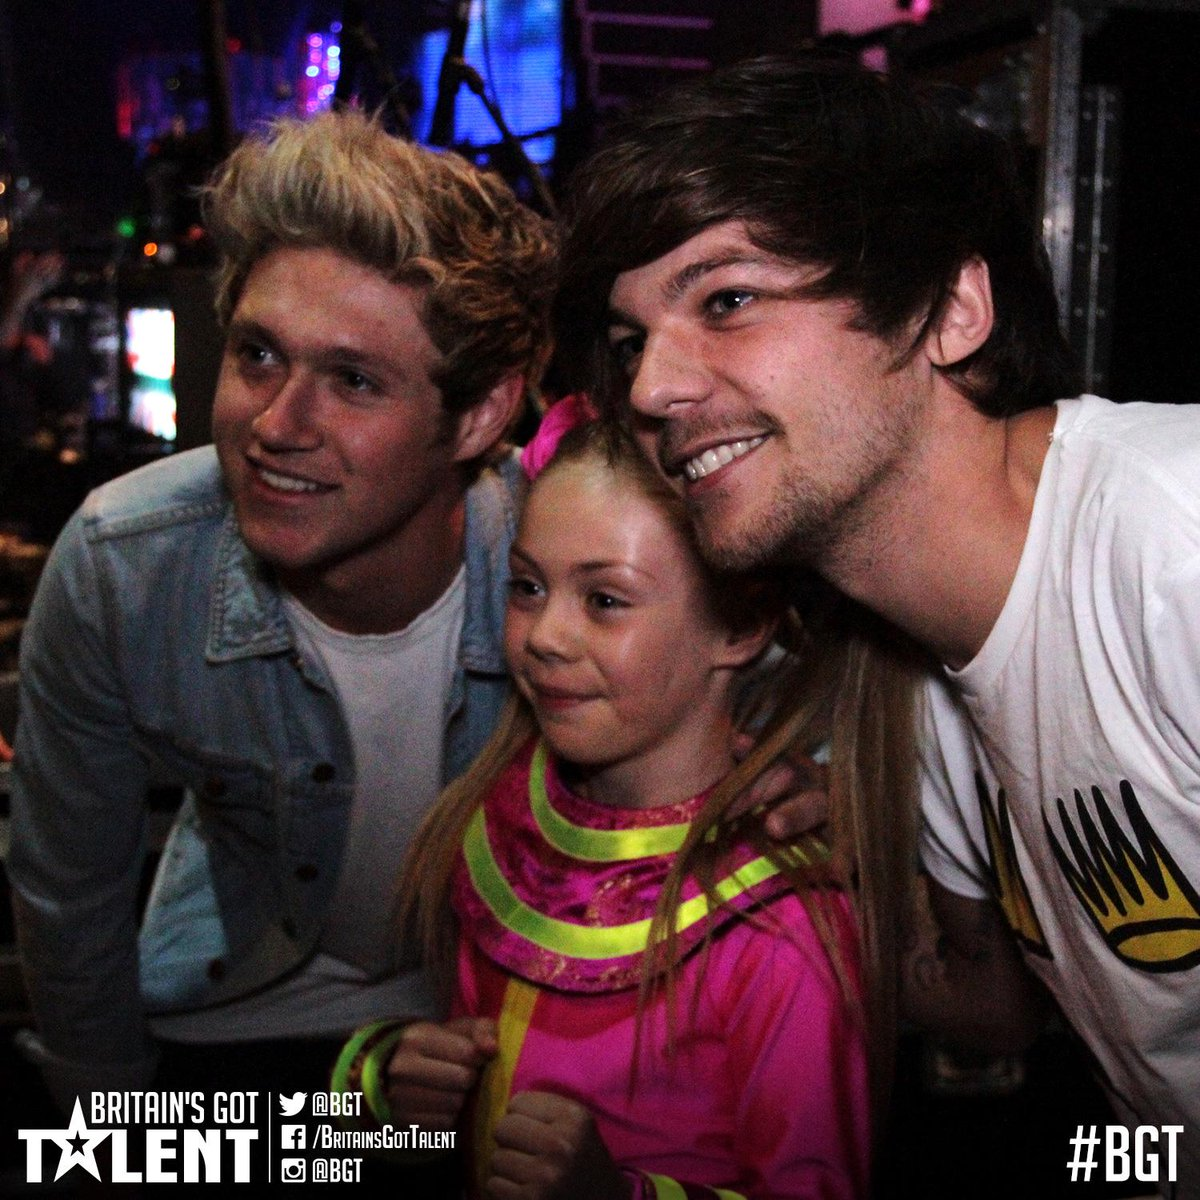 Backstage with @JJmcparland & two guys ... @Louis_Tomlinson & @NiallOfficial from some band. @onedirection? #BGTfinal http://t.co/AT8avaH3rg